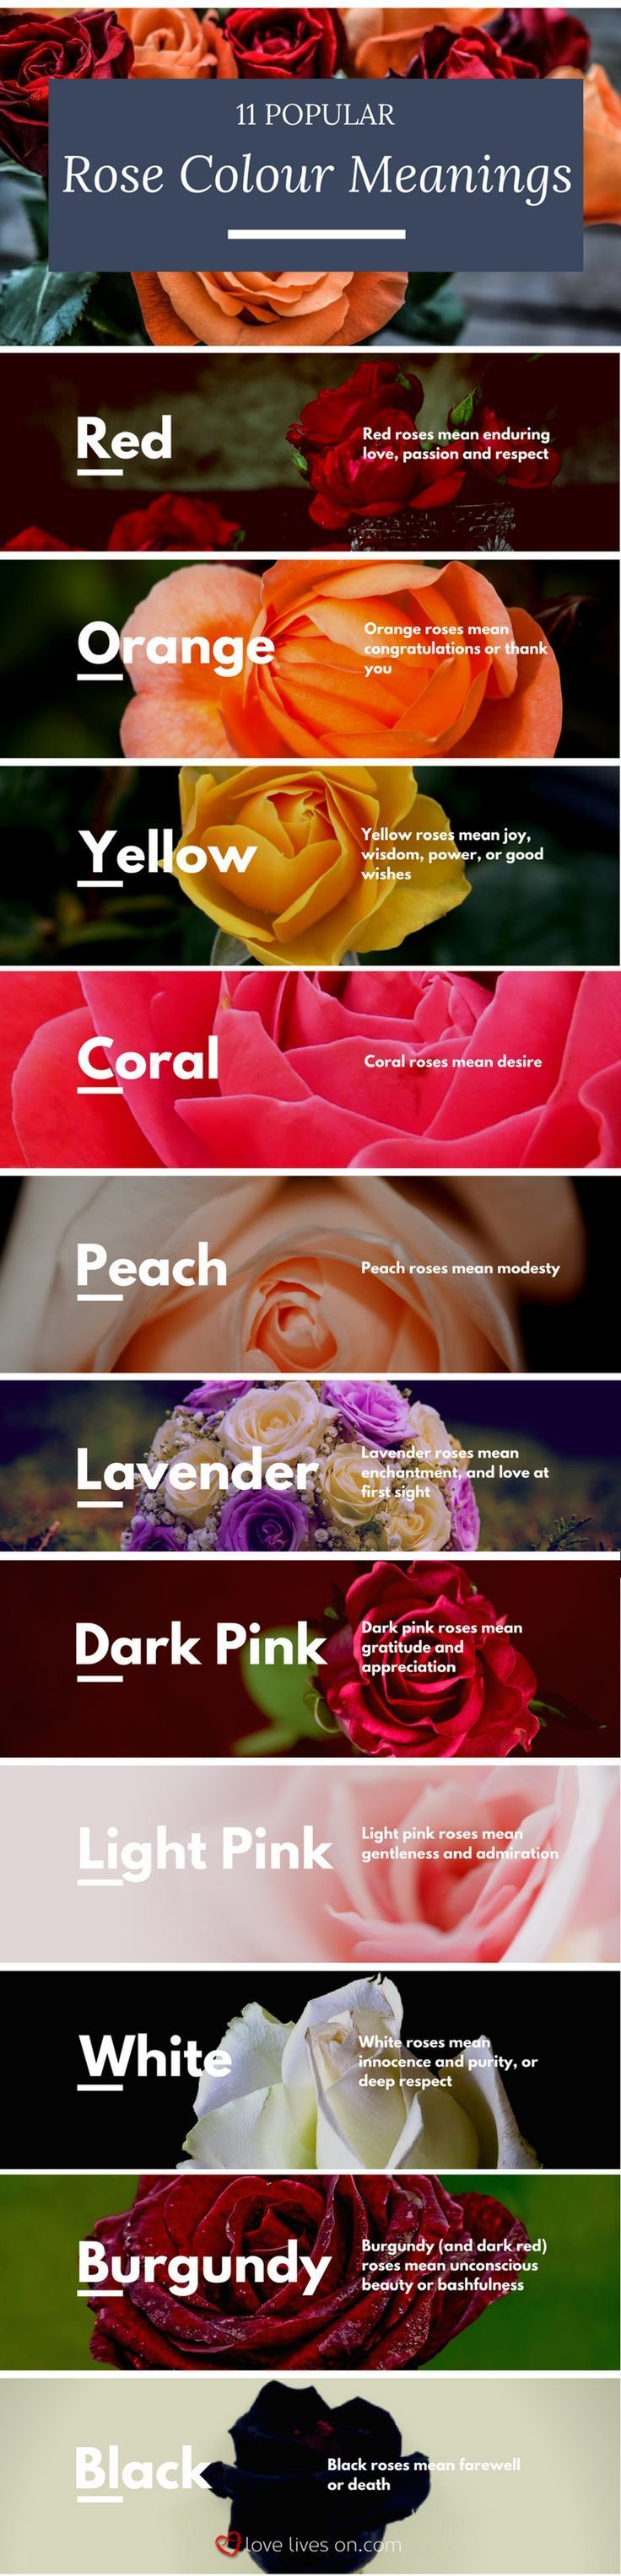 10+ Best Funeral Flowers | Funeral arrangements, Color meanings and ...